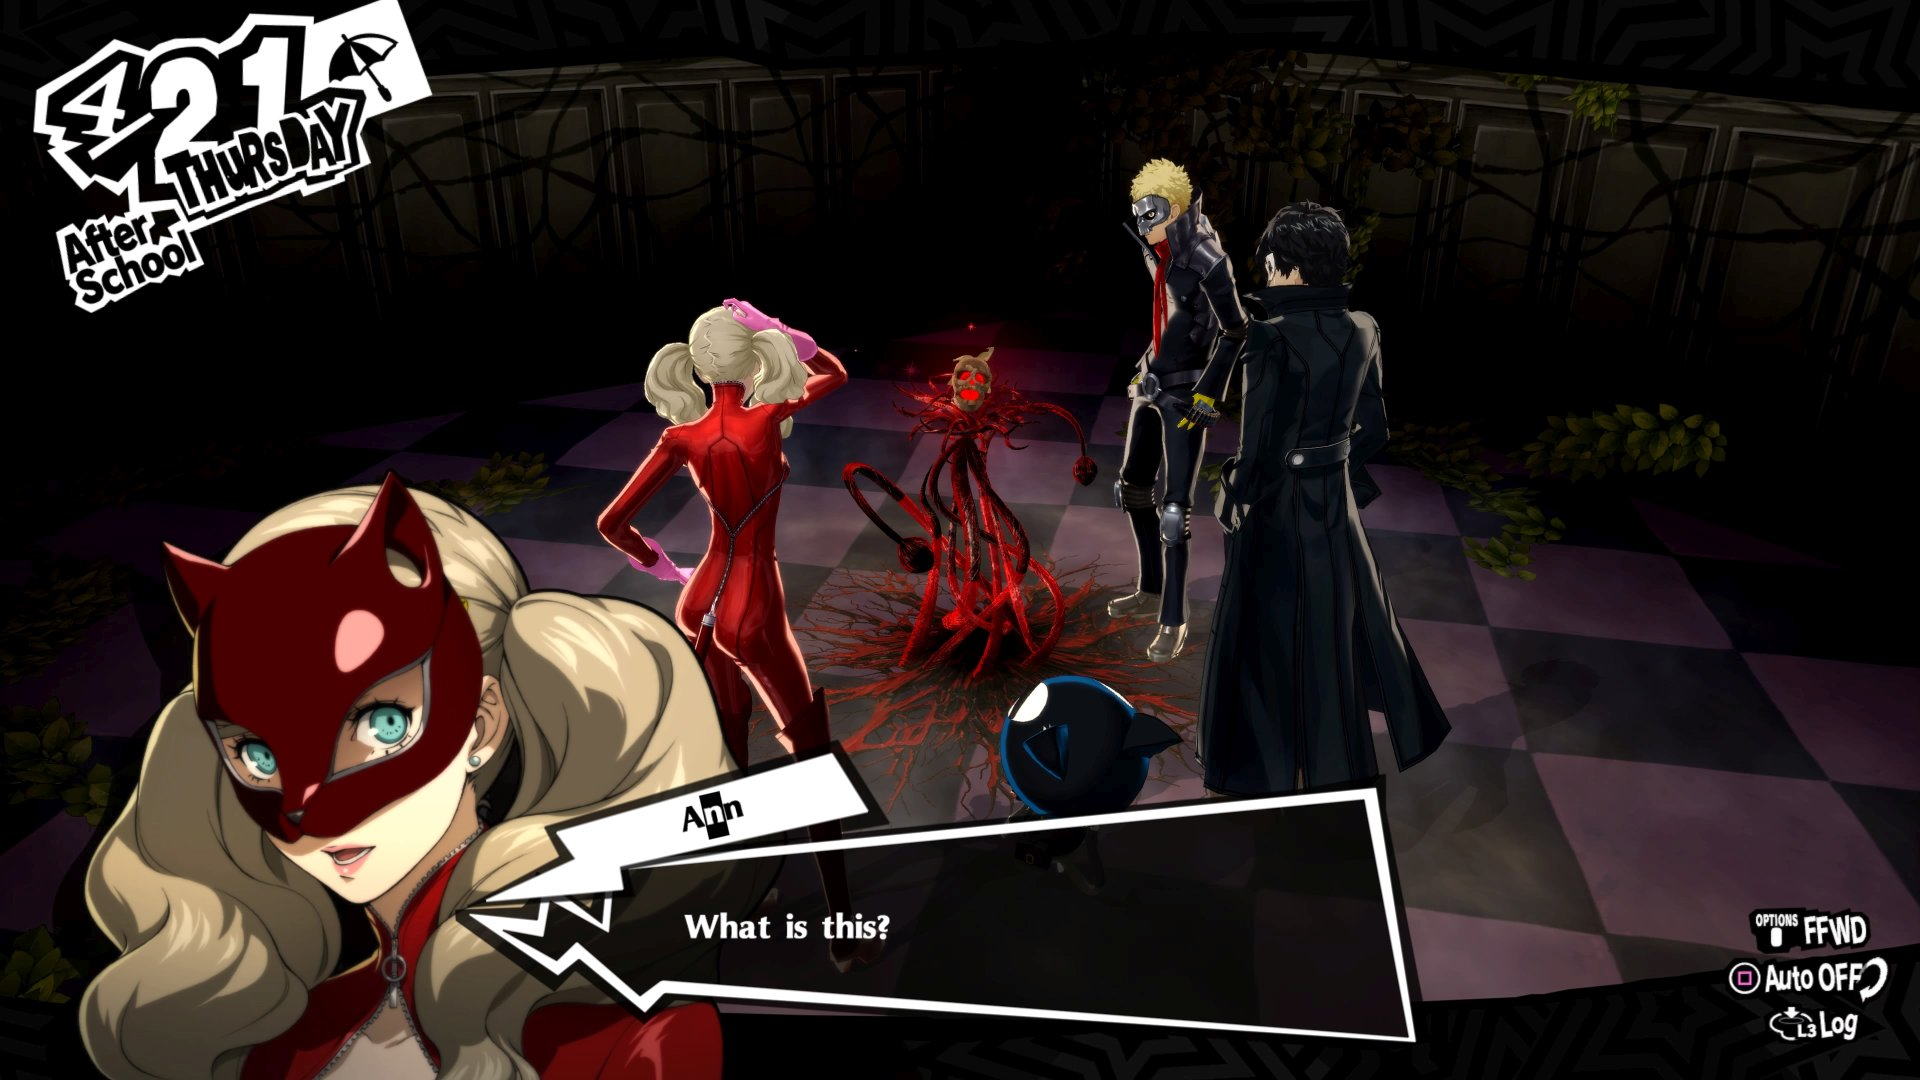 Persona 5 Royal - PS4 - Recenzja Gry - rascal.pl - Will Seed